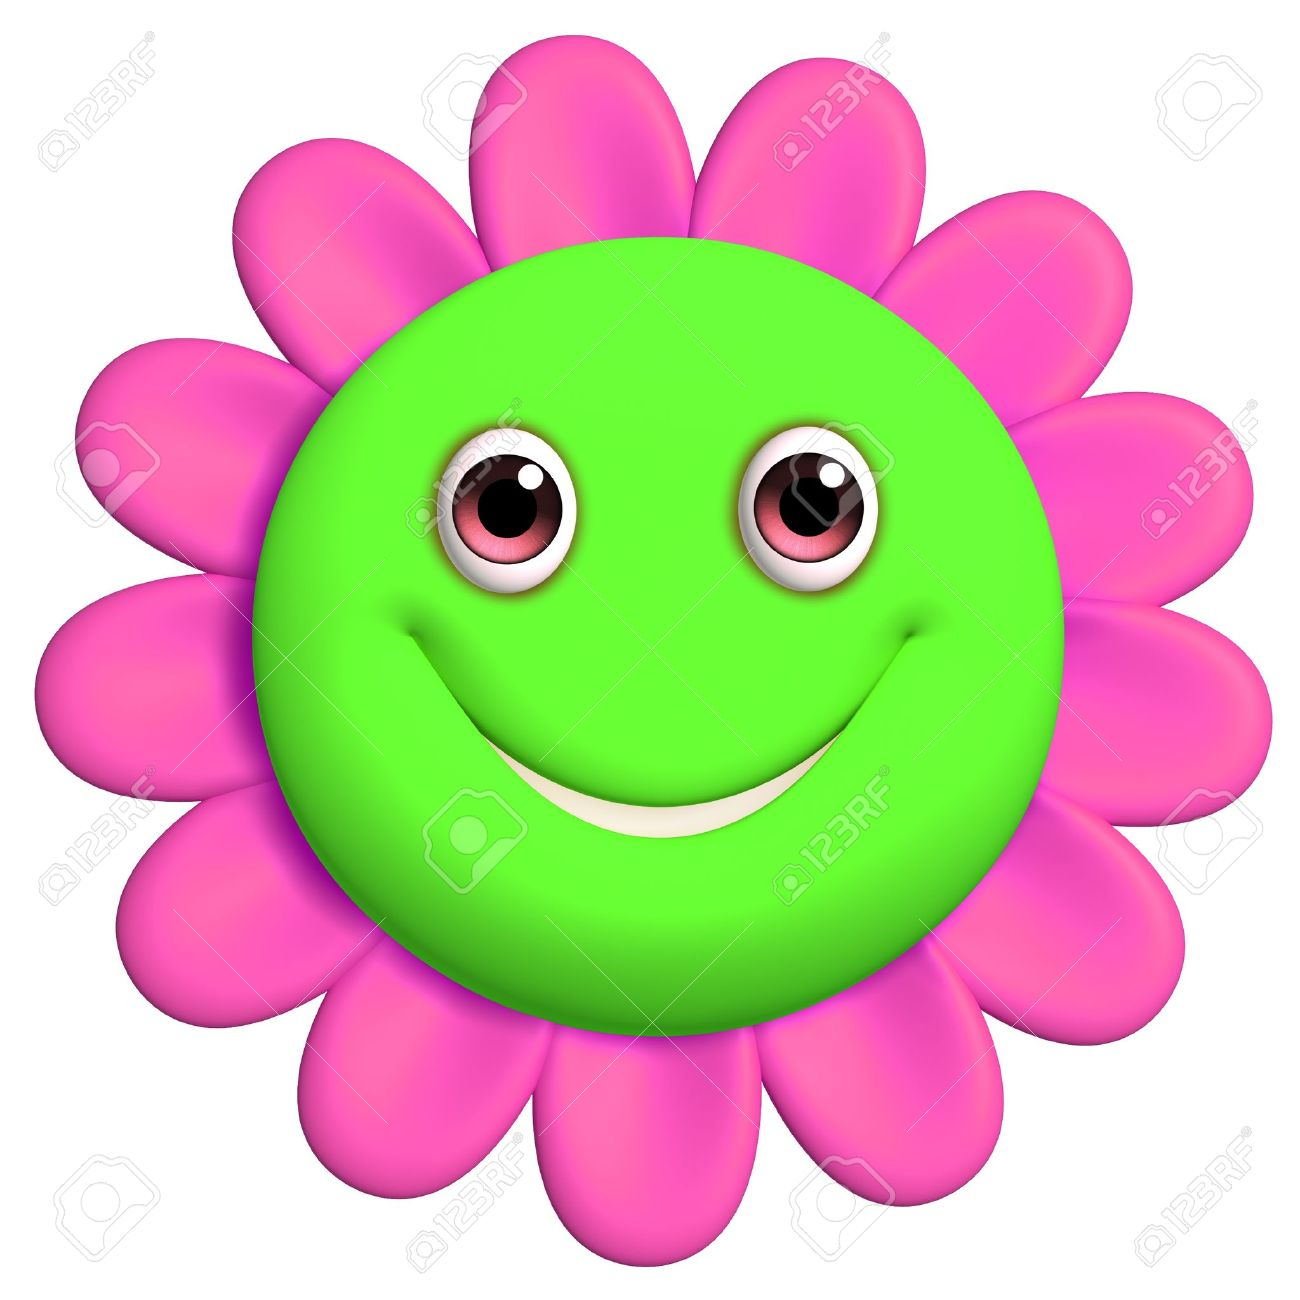 Green Smiley Face Images Stock Free